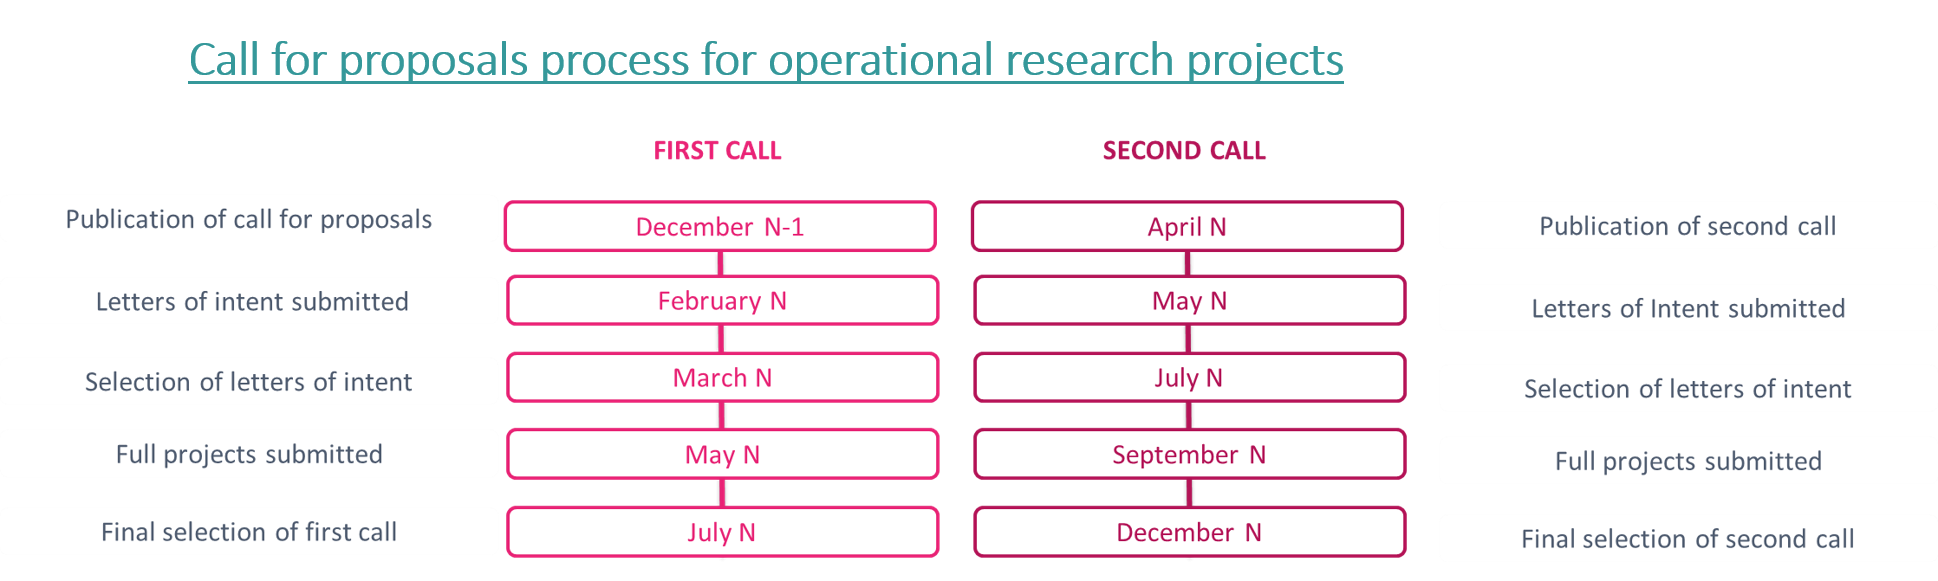 OPERATIONAL RESEARCH PROJECTS